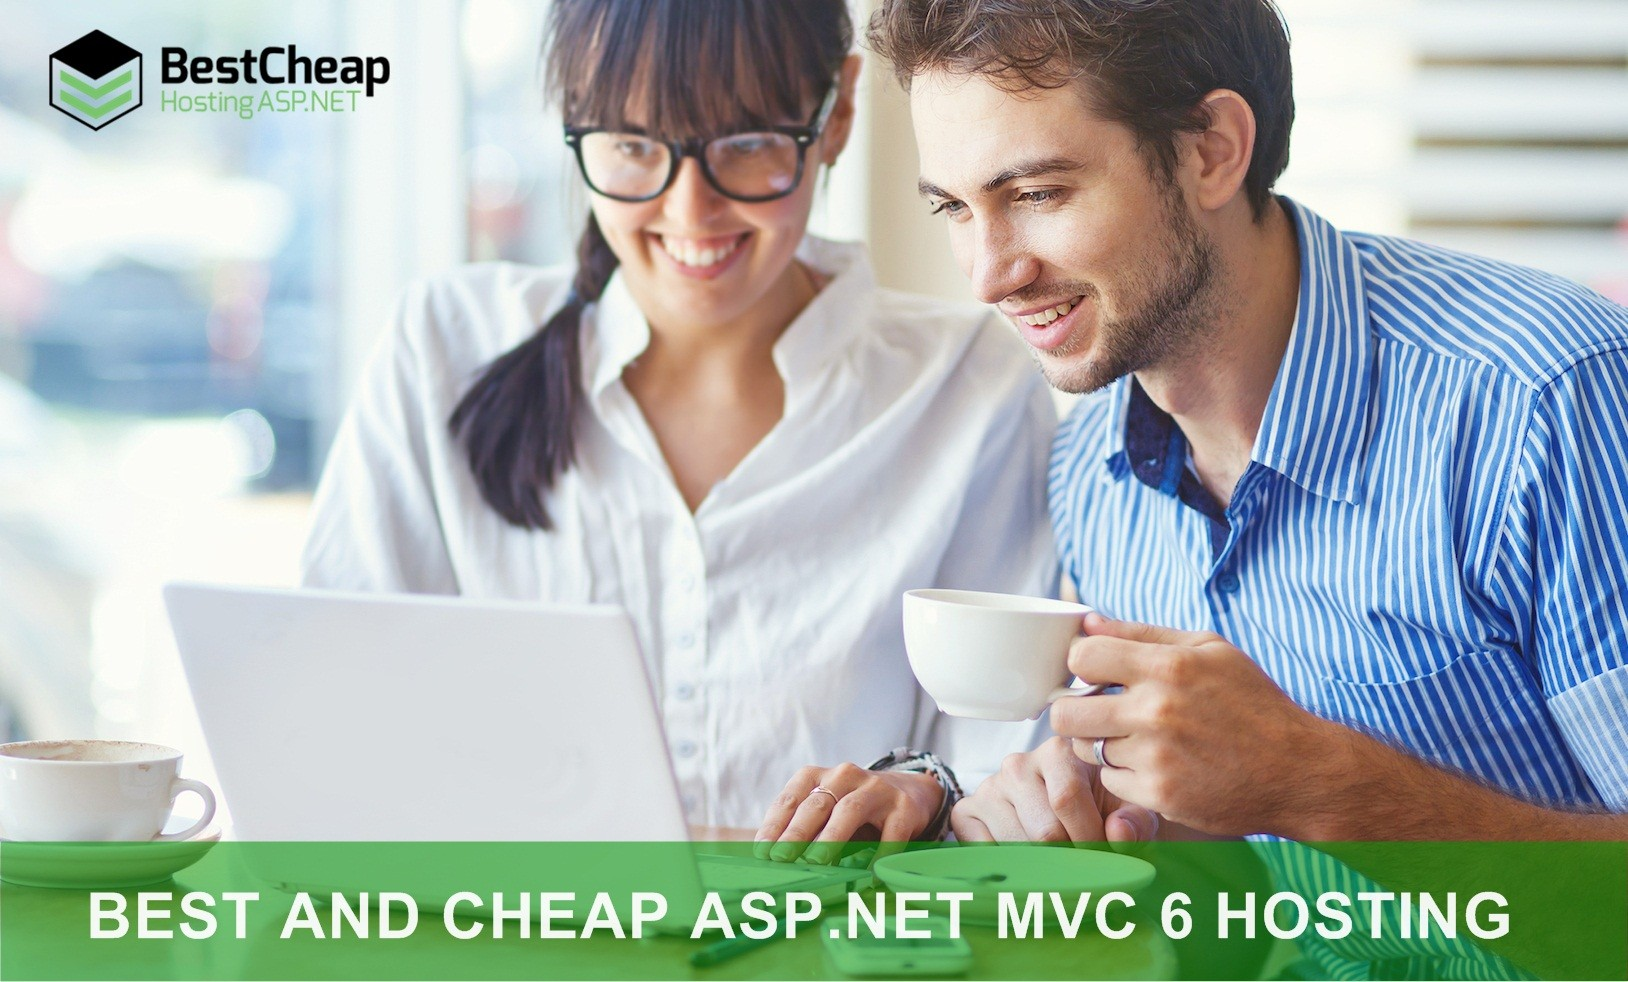 Best Cheap ASP.NET MVC 6 Hosting